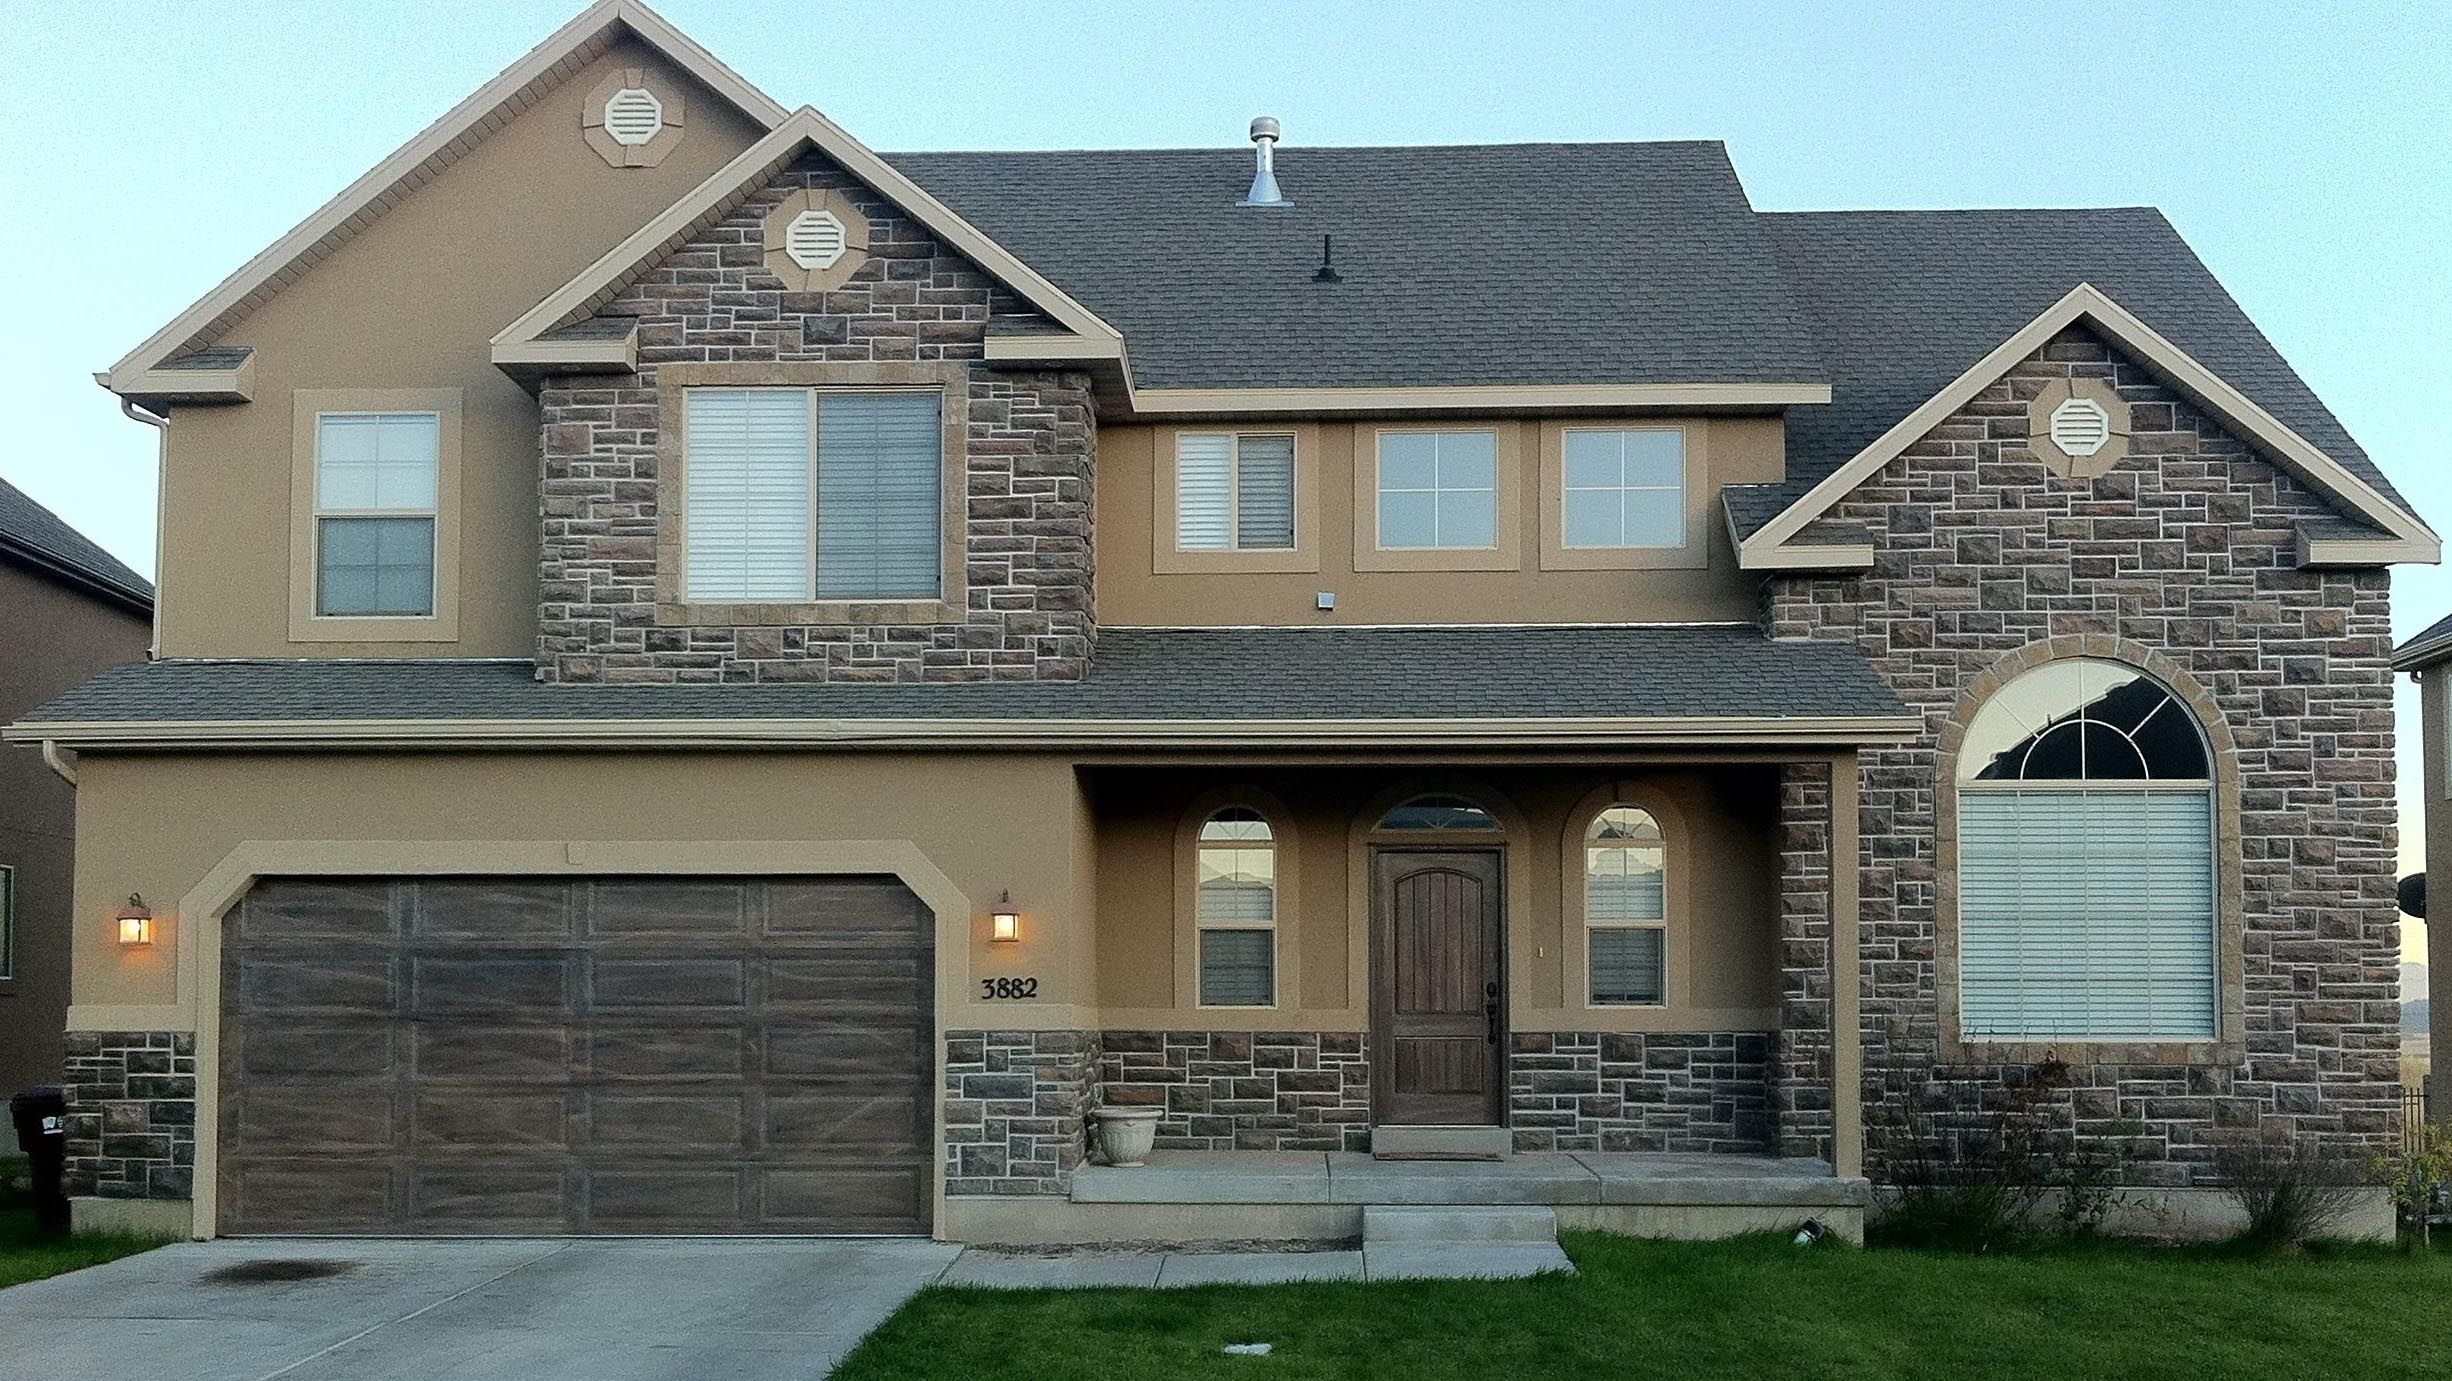 Image result for grey stone and stucco exterior houses | Projects to ... for Modern Brick And Stucco House  70ref